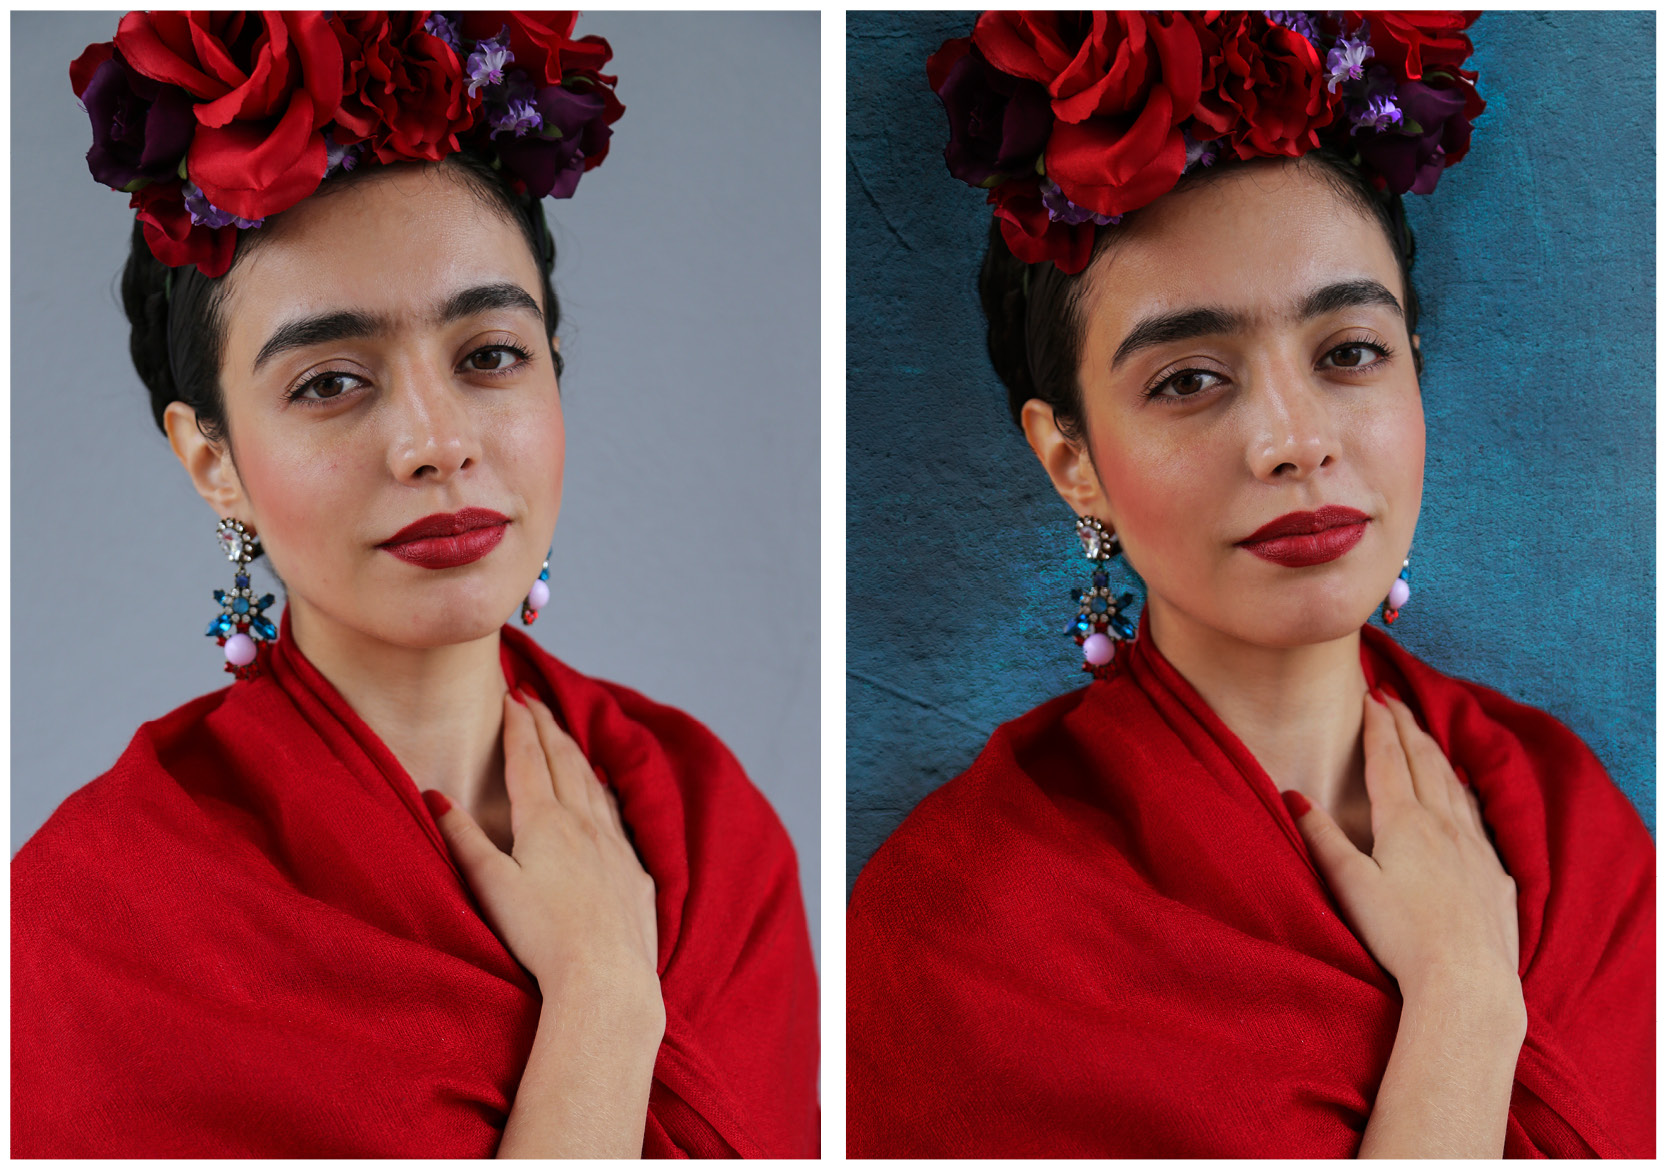 Before and after Photoshop comparison of Frida Kahlo photos